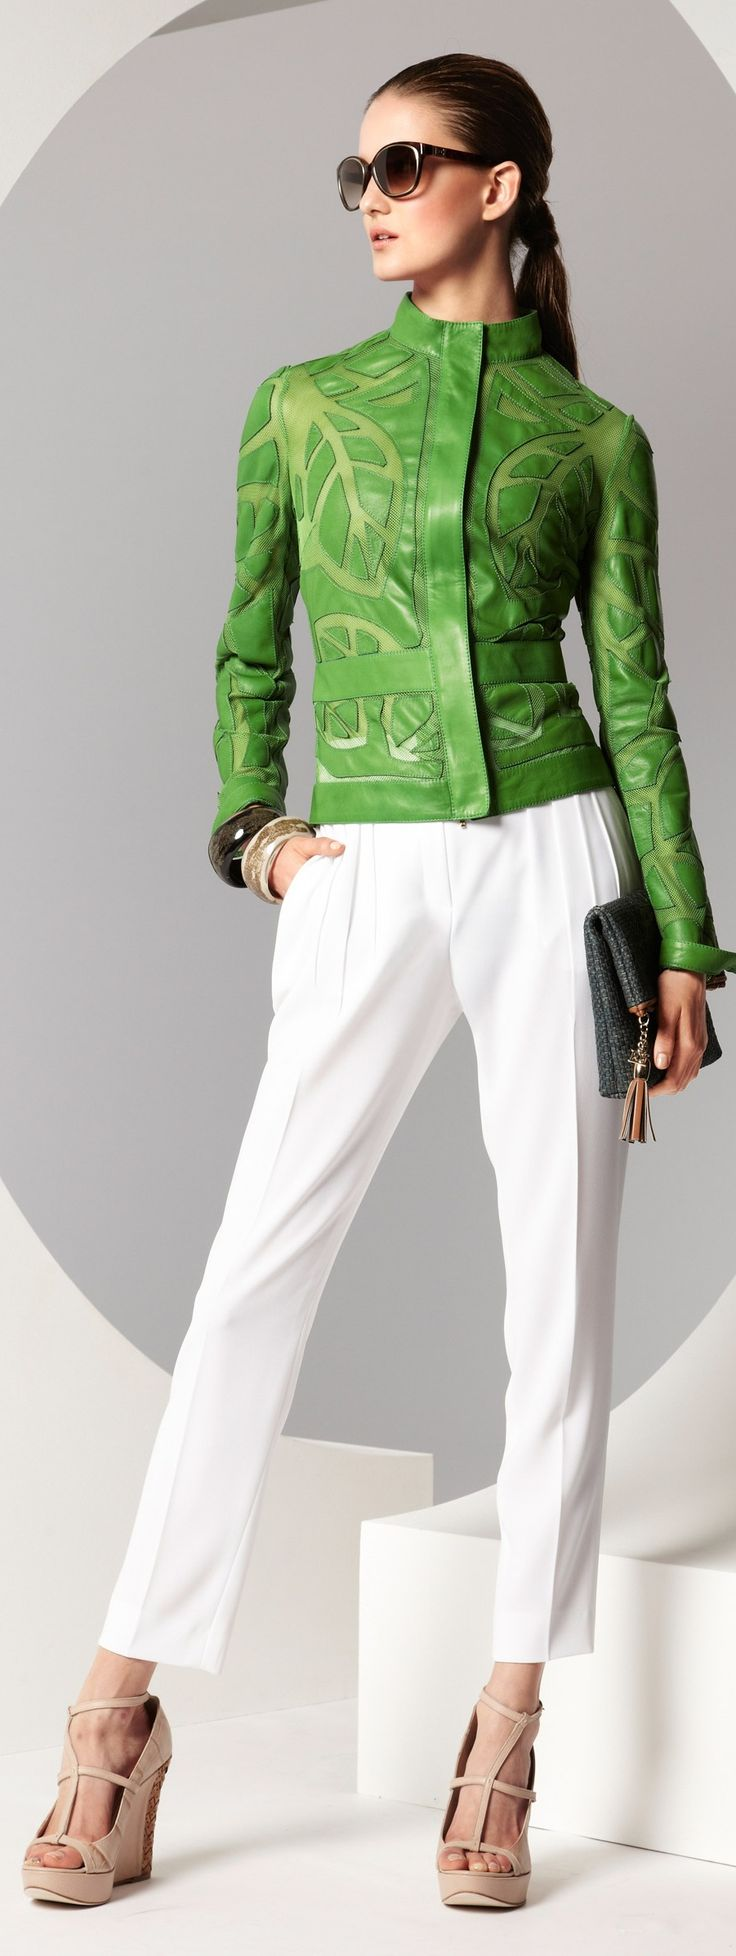 Escada 2013 ~  leaf patterened and green... this is SO me, but need it styled differently.  <3 it